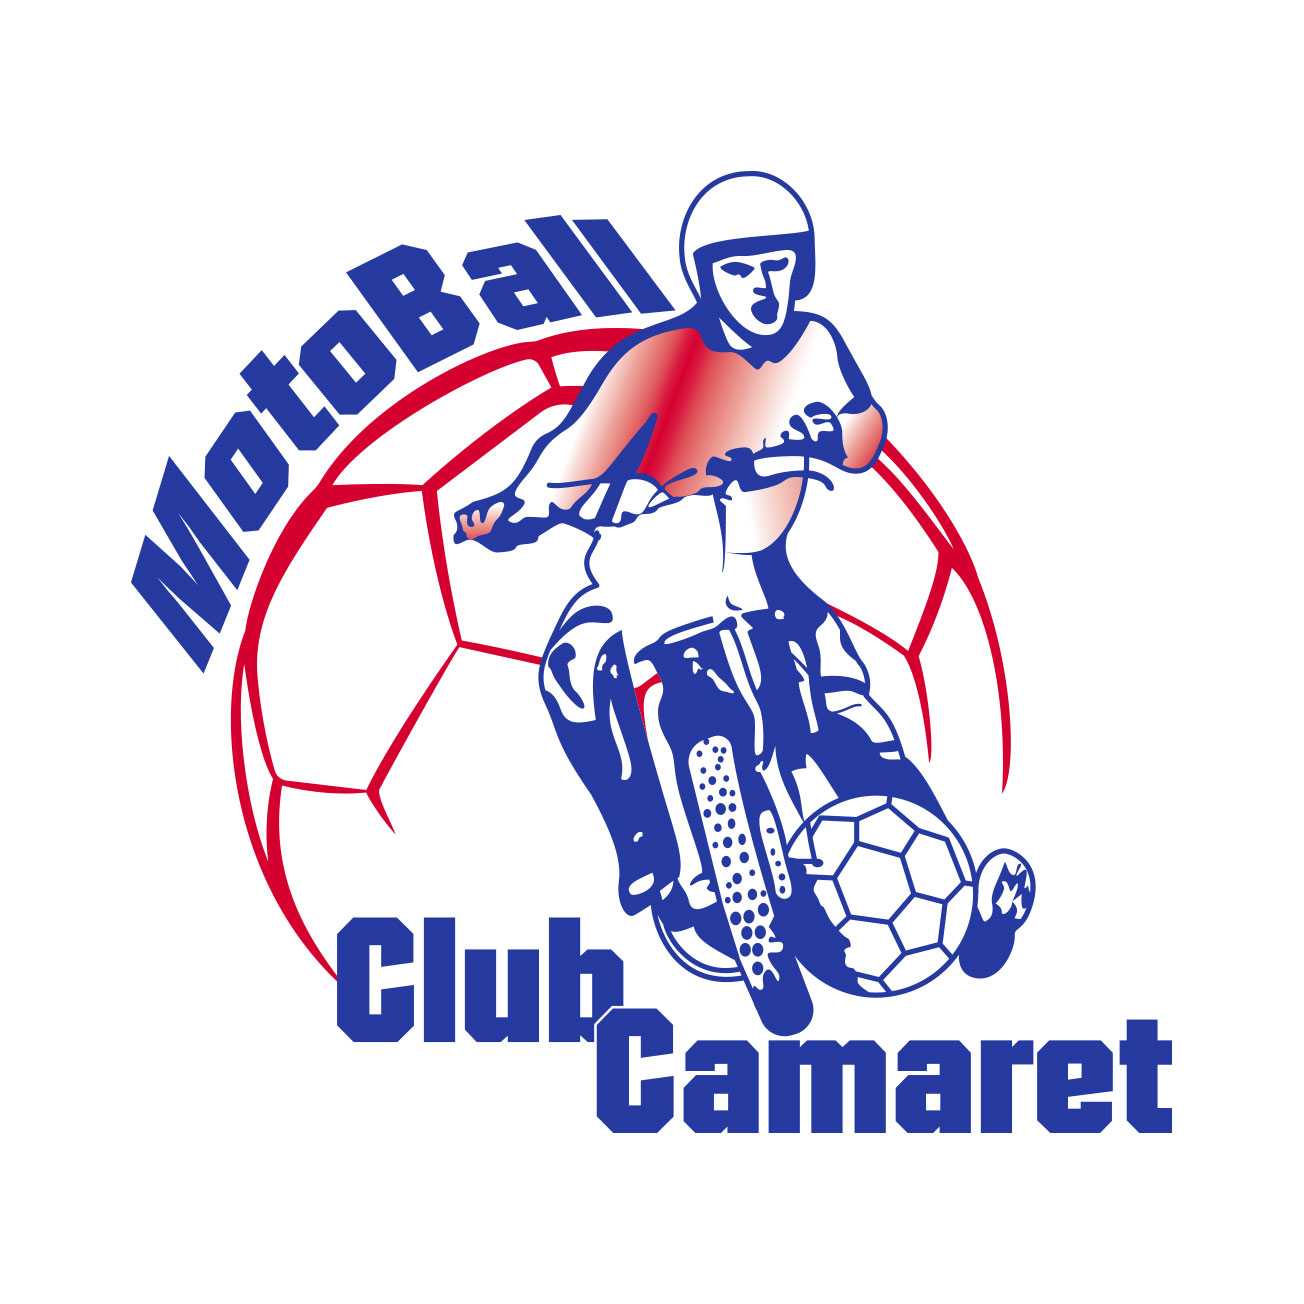 Moto-Ball Club Camaret